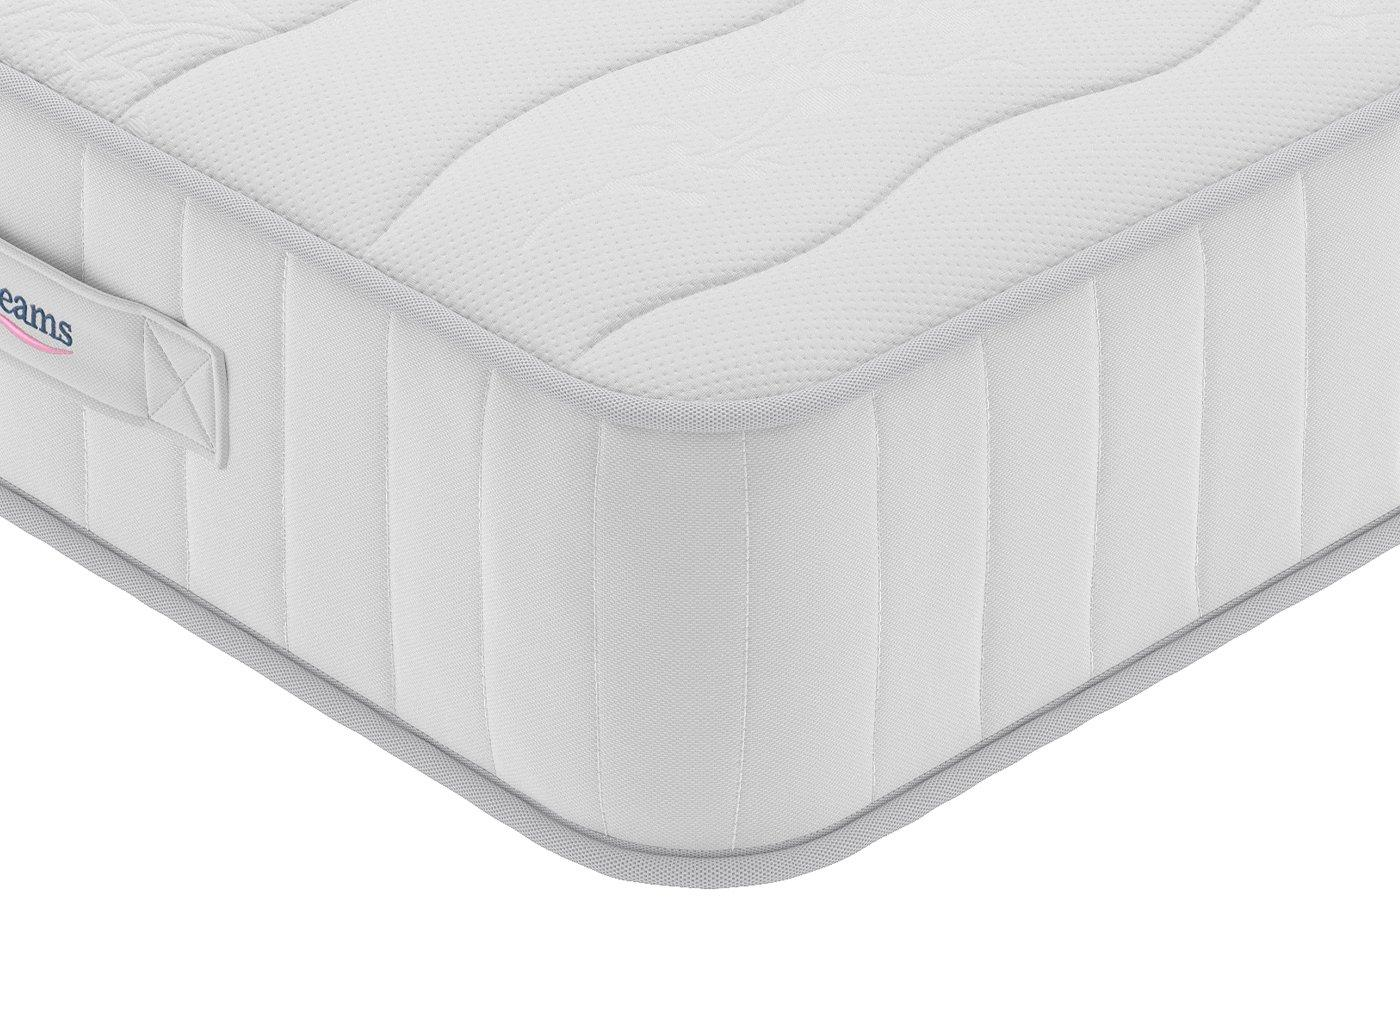 Conroy Traditional Spring Mattress - Medium 4'0 Small double